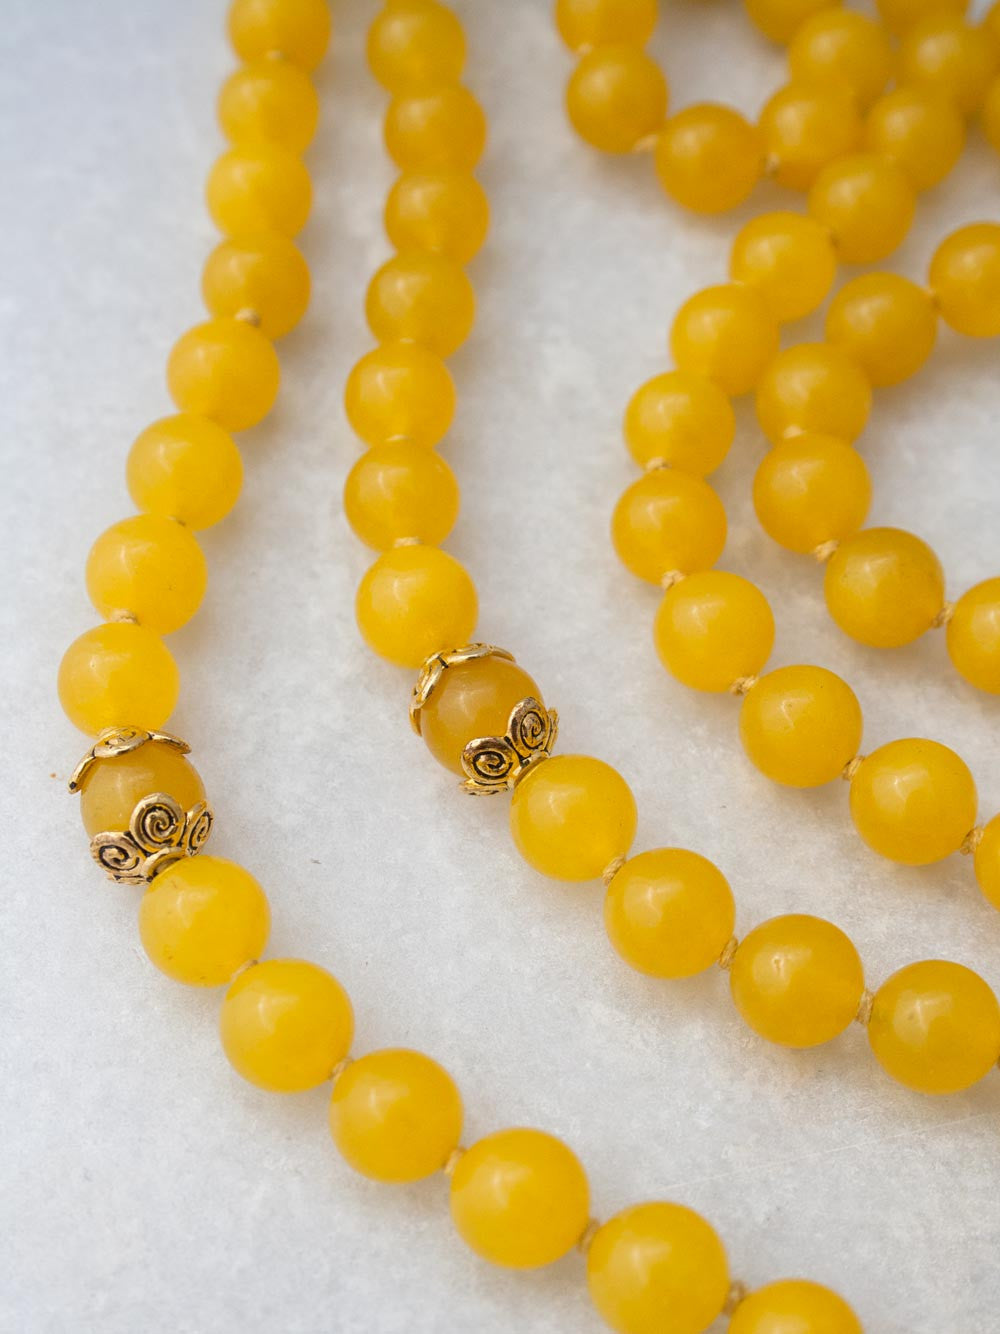 Our Splendour Mala, in aurora gloria yellow aventurine, has a brass Guru bead & glorious Shri Yantra pendant: view beads and spacers